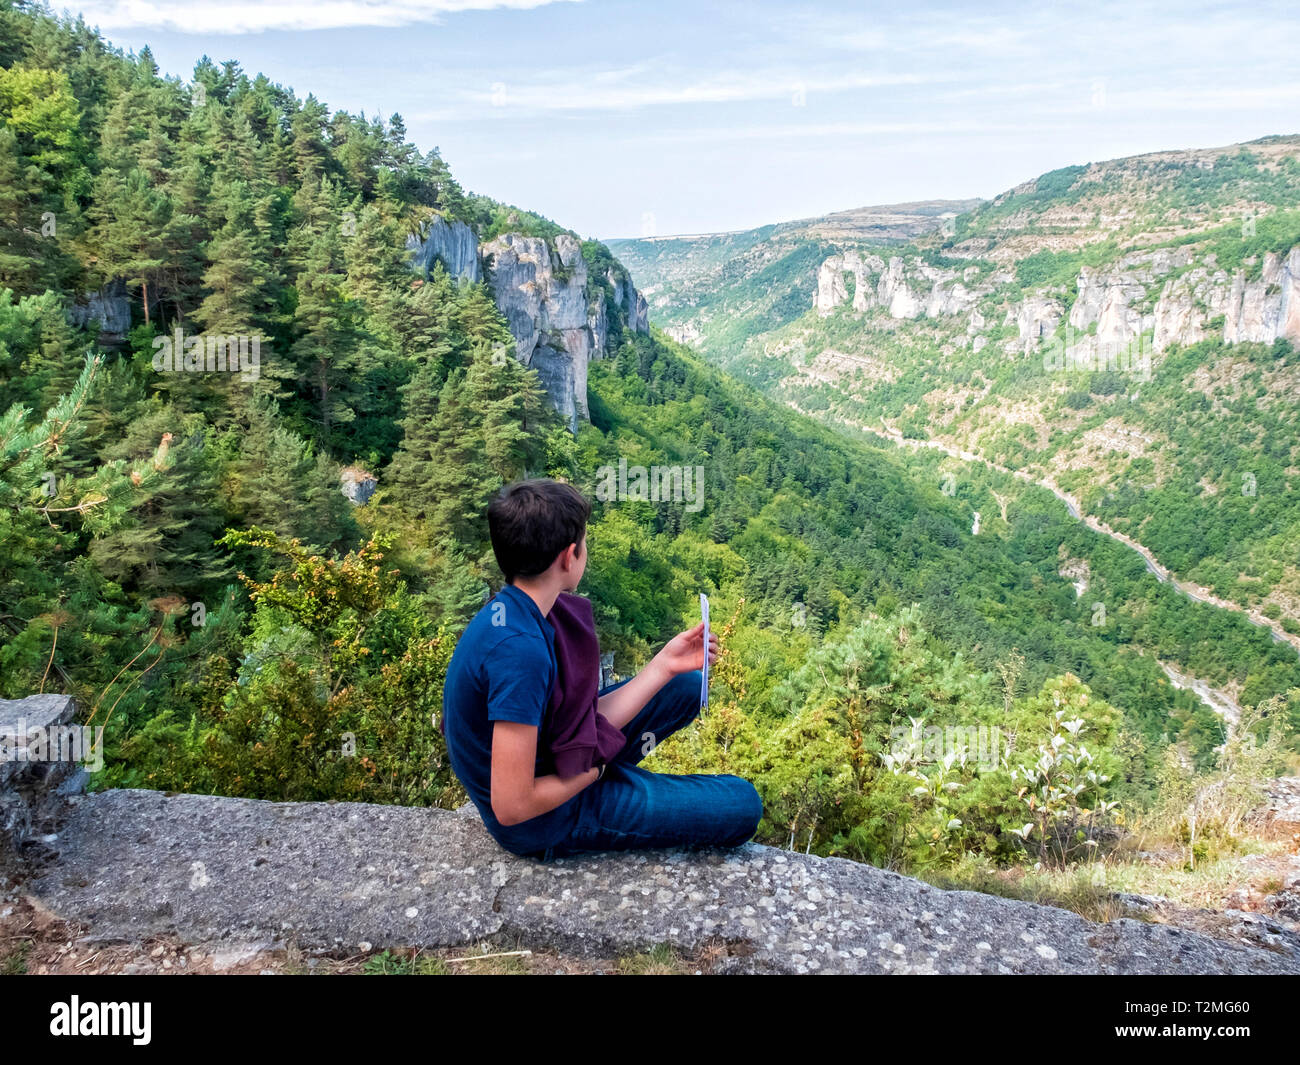 Rear view of a boy sitting on a rock formation and looking at the view - Stock Image